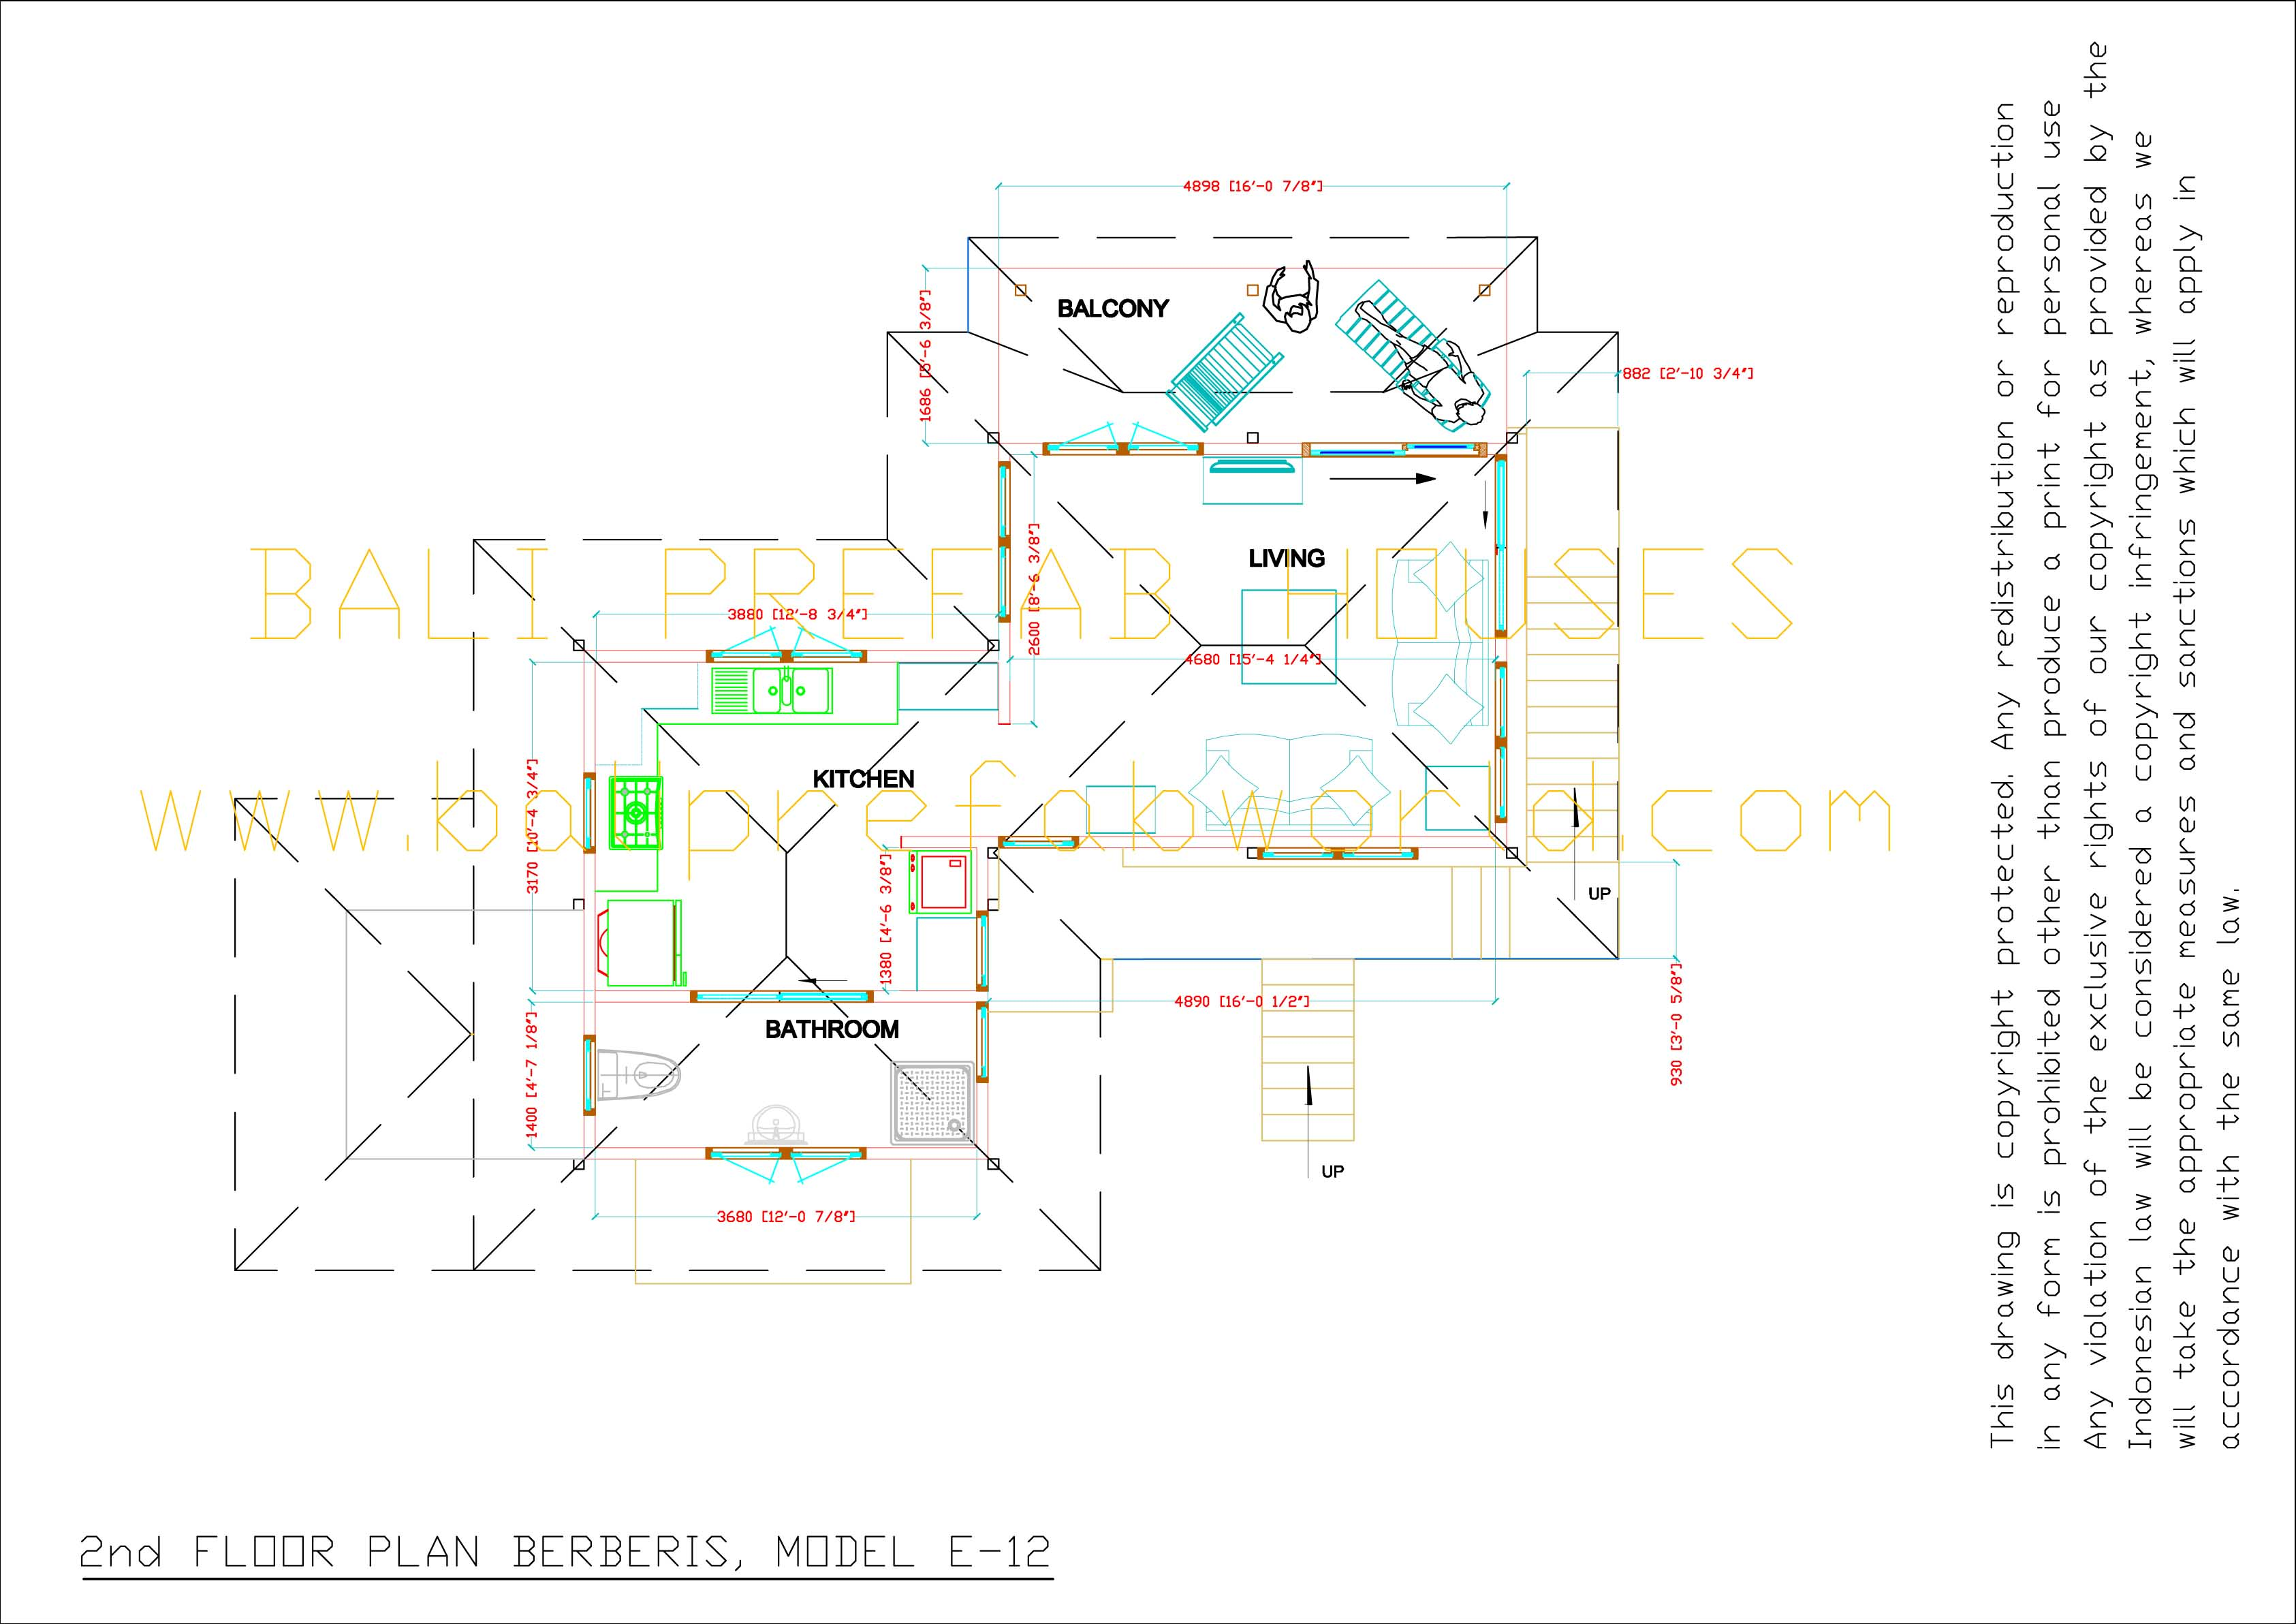 Berberis floorplan-2